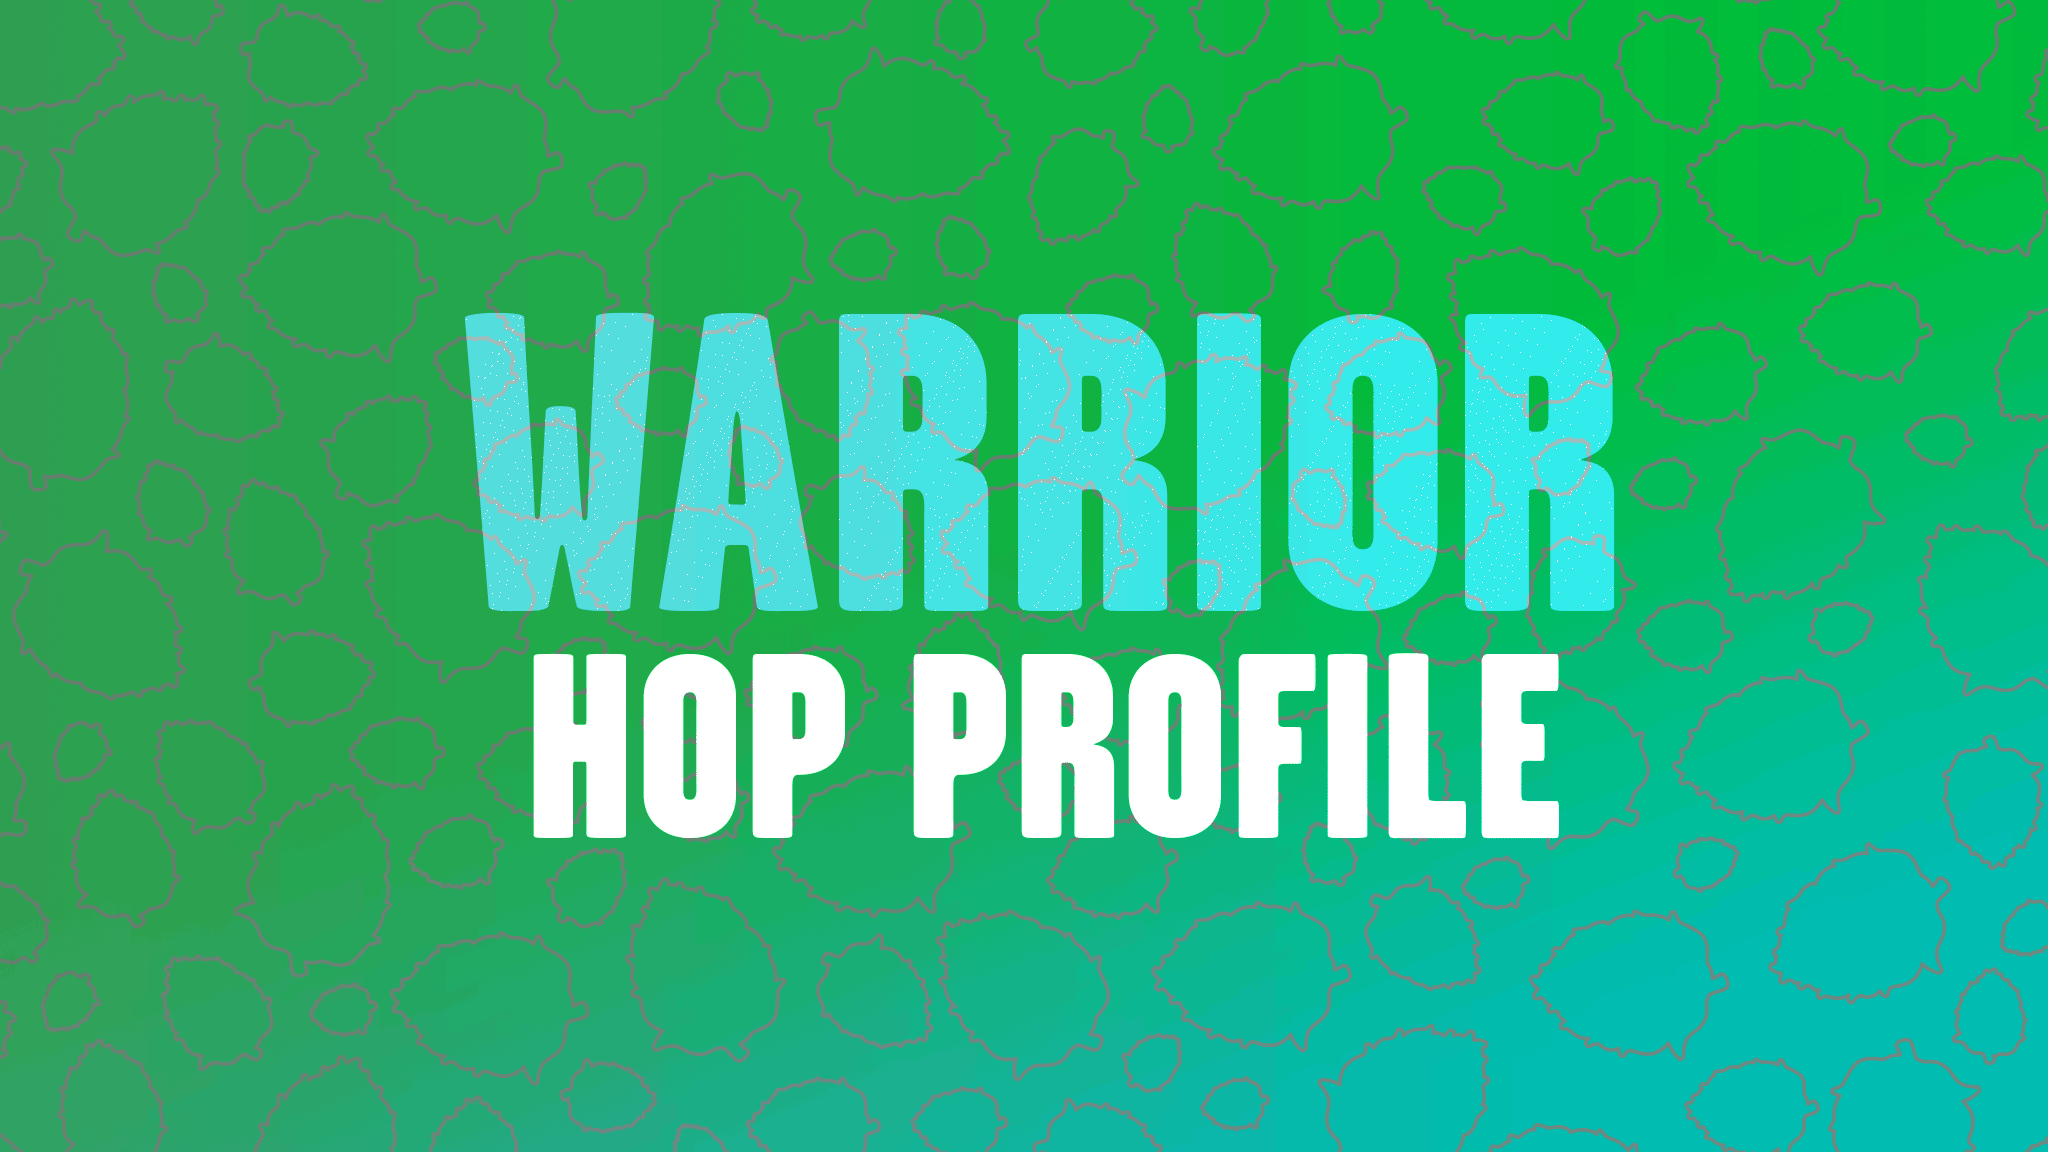 Hop Profile: Warrior